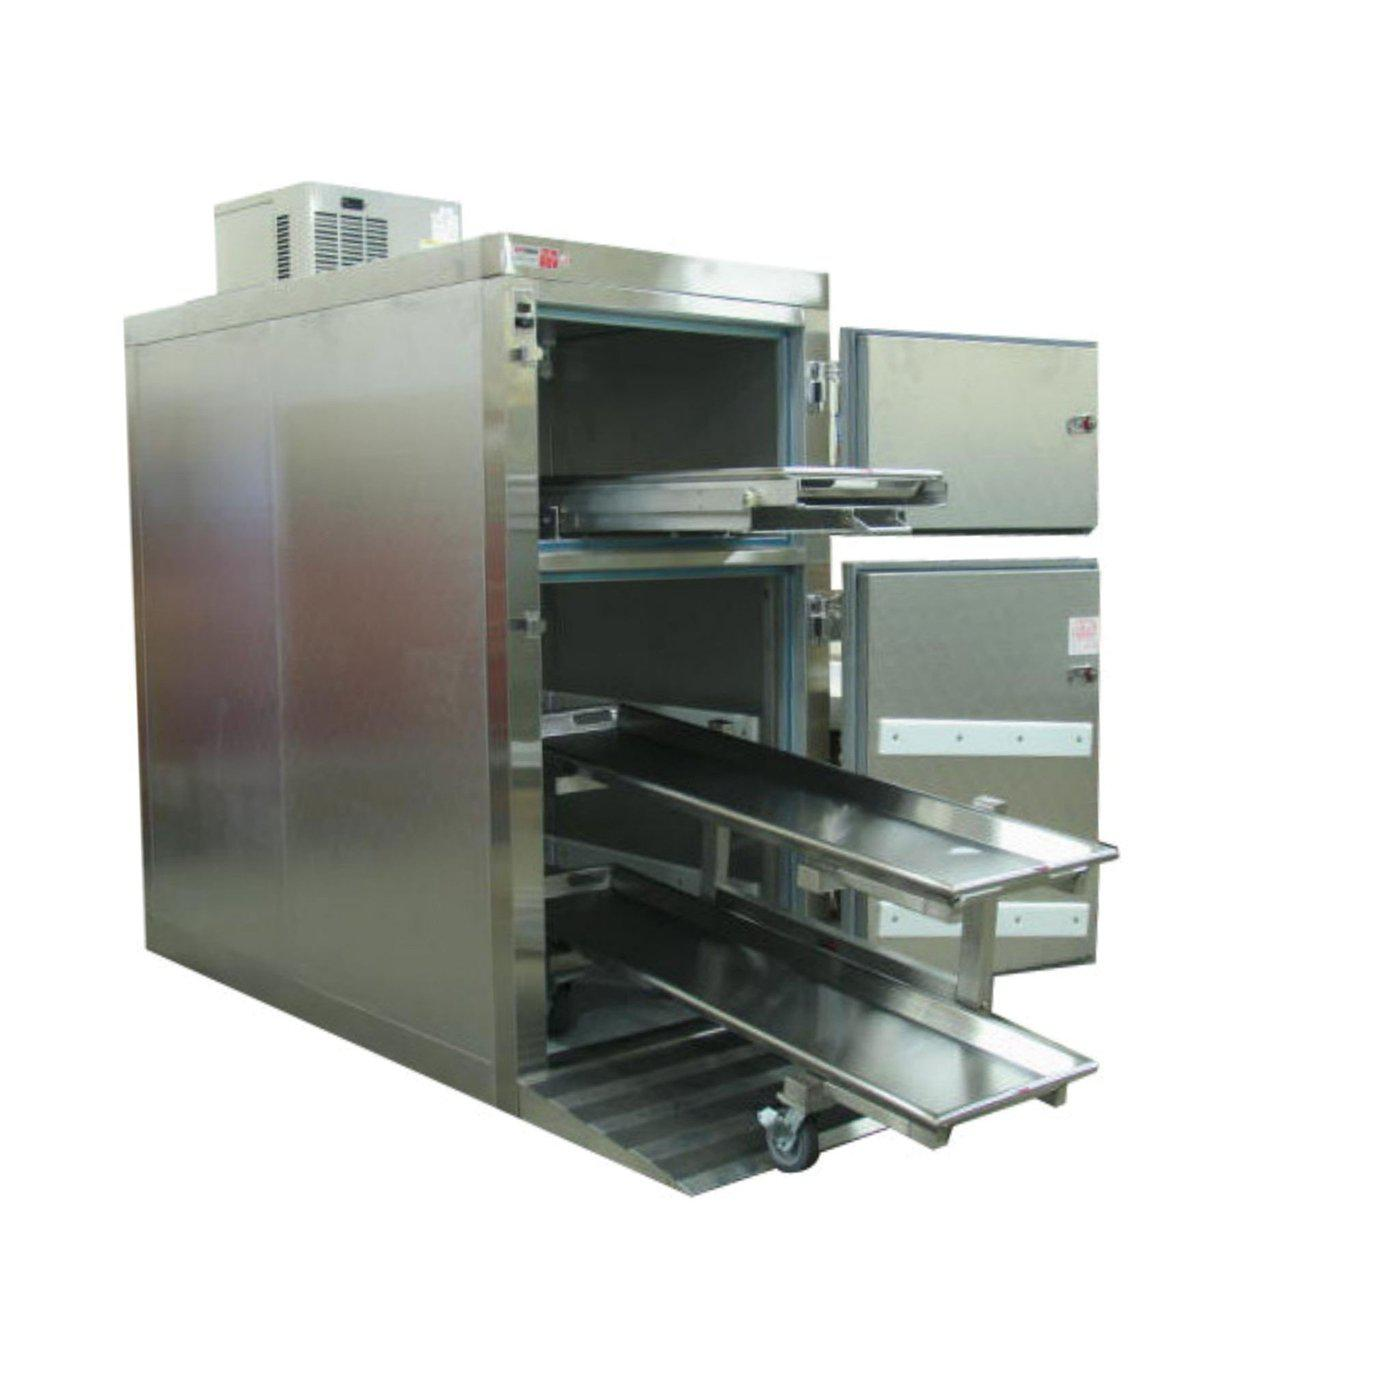 Two or Three Body Tiered Refrigerator-Refrigeration-Mortech Manufacturing Company Inc. Quality Stainless Steel Autopsy, Morgue, Funeral Home, Necropsy, Veterinary / Anatomy, Dissection Equipment and Accessories